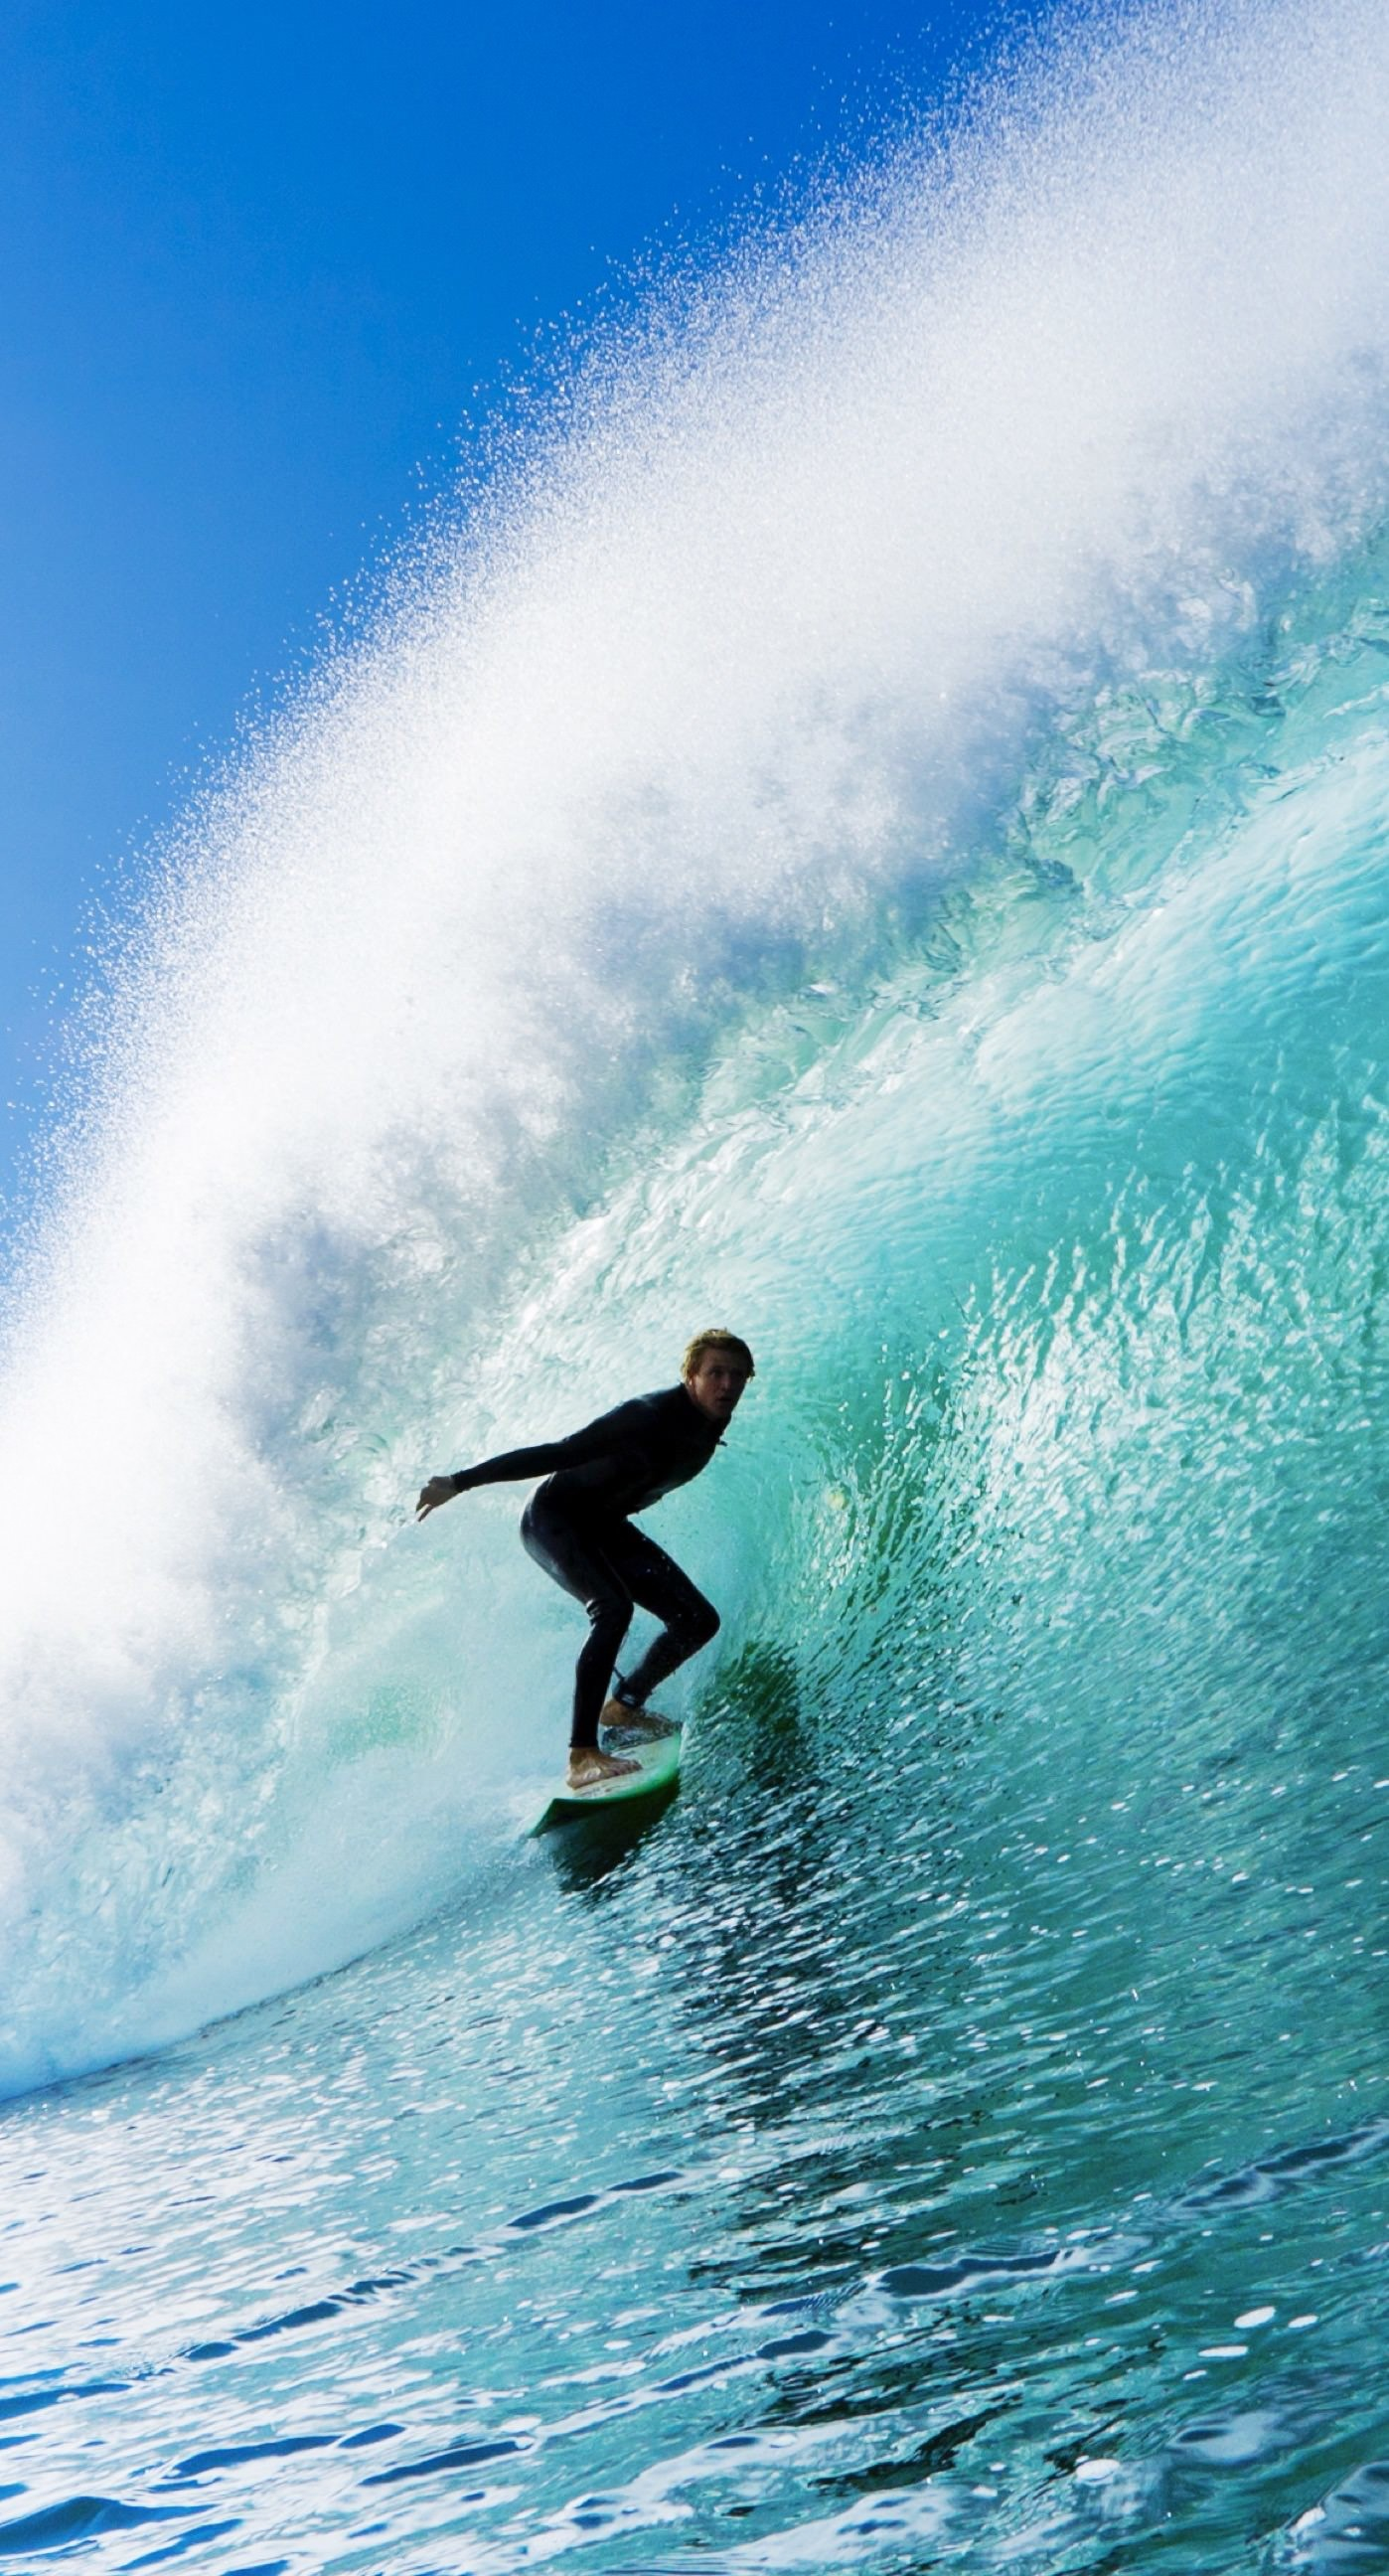 1920x1200 Sports Surfing Waves 28274